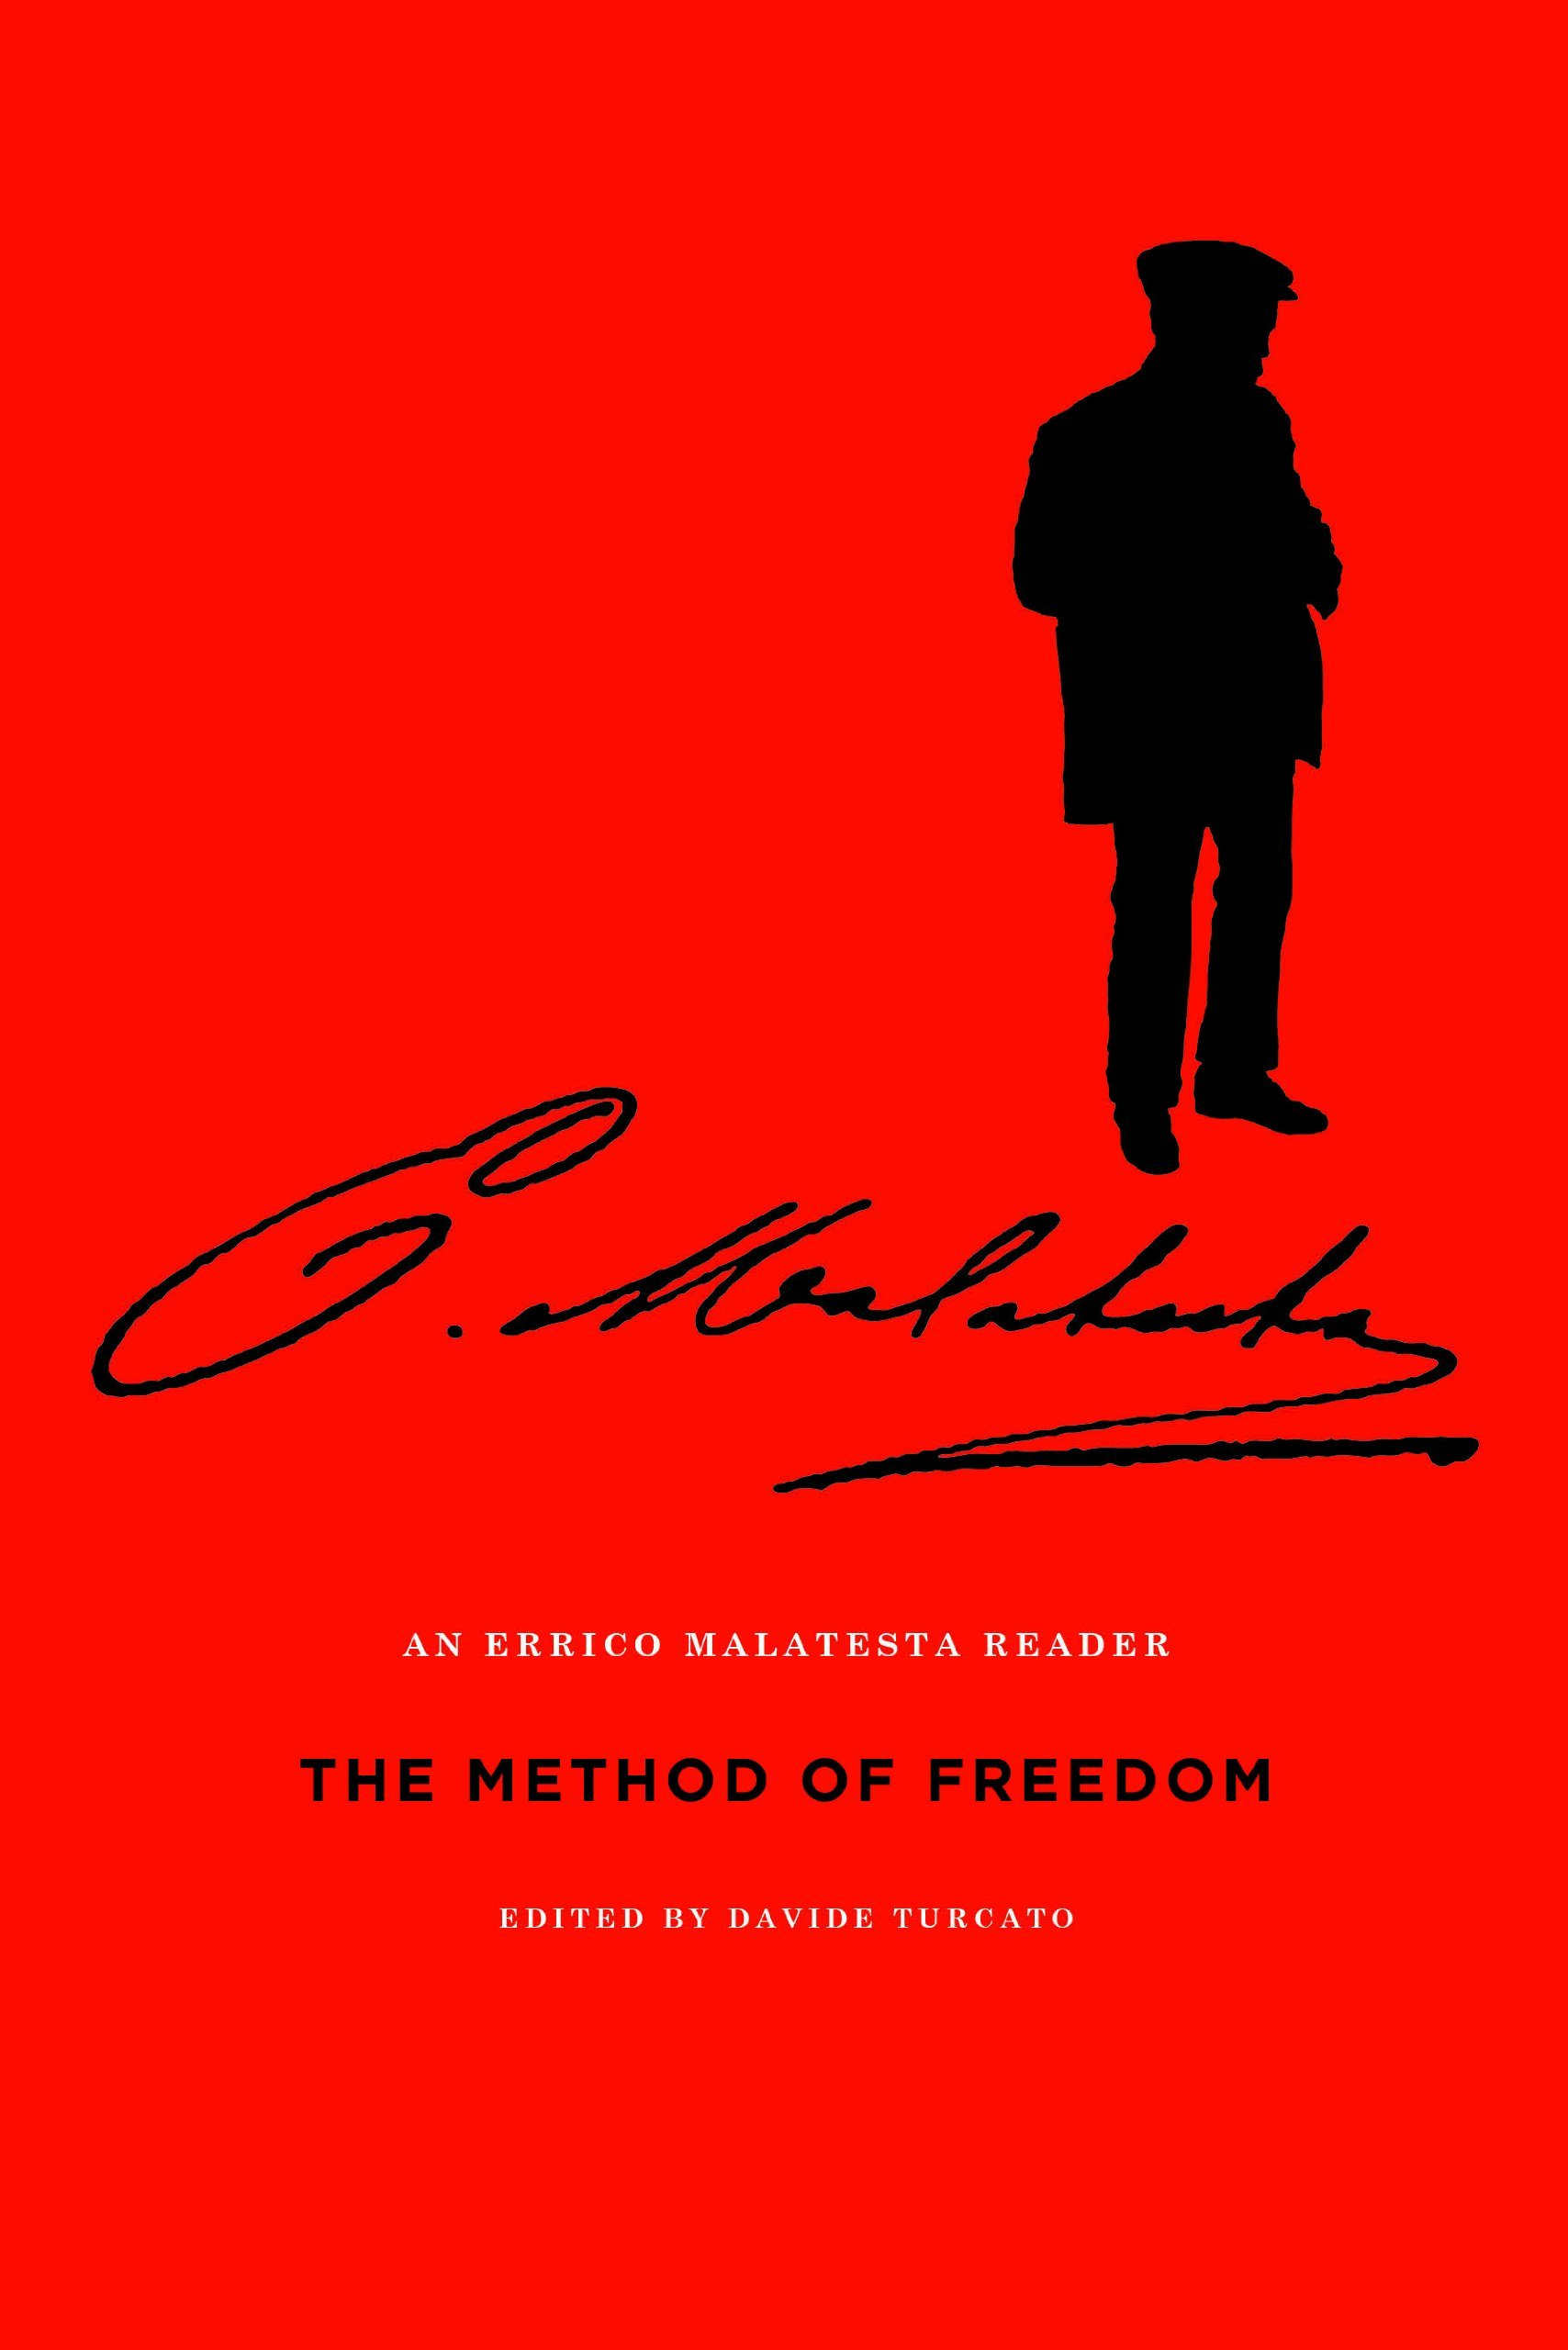 Davide Turcato (ed.), The Method of Freedom: An Errico Malatesta Reader